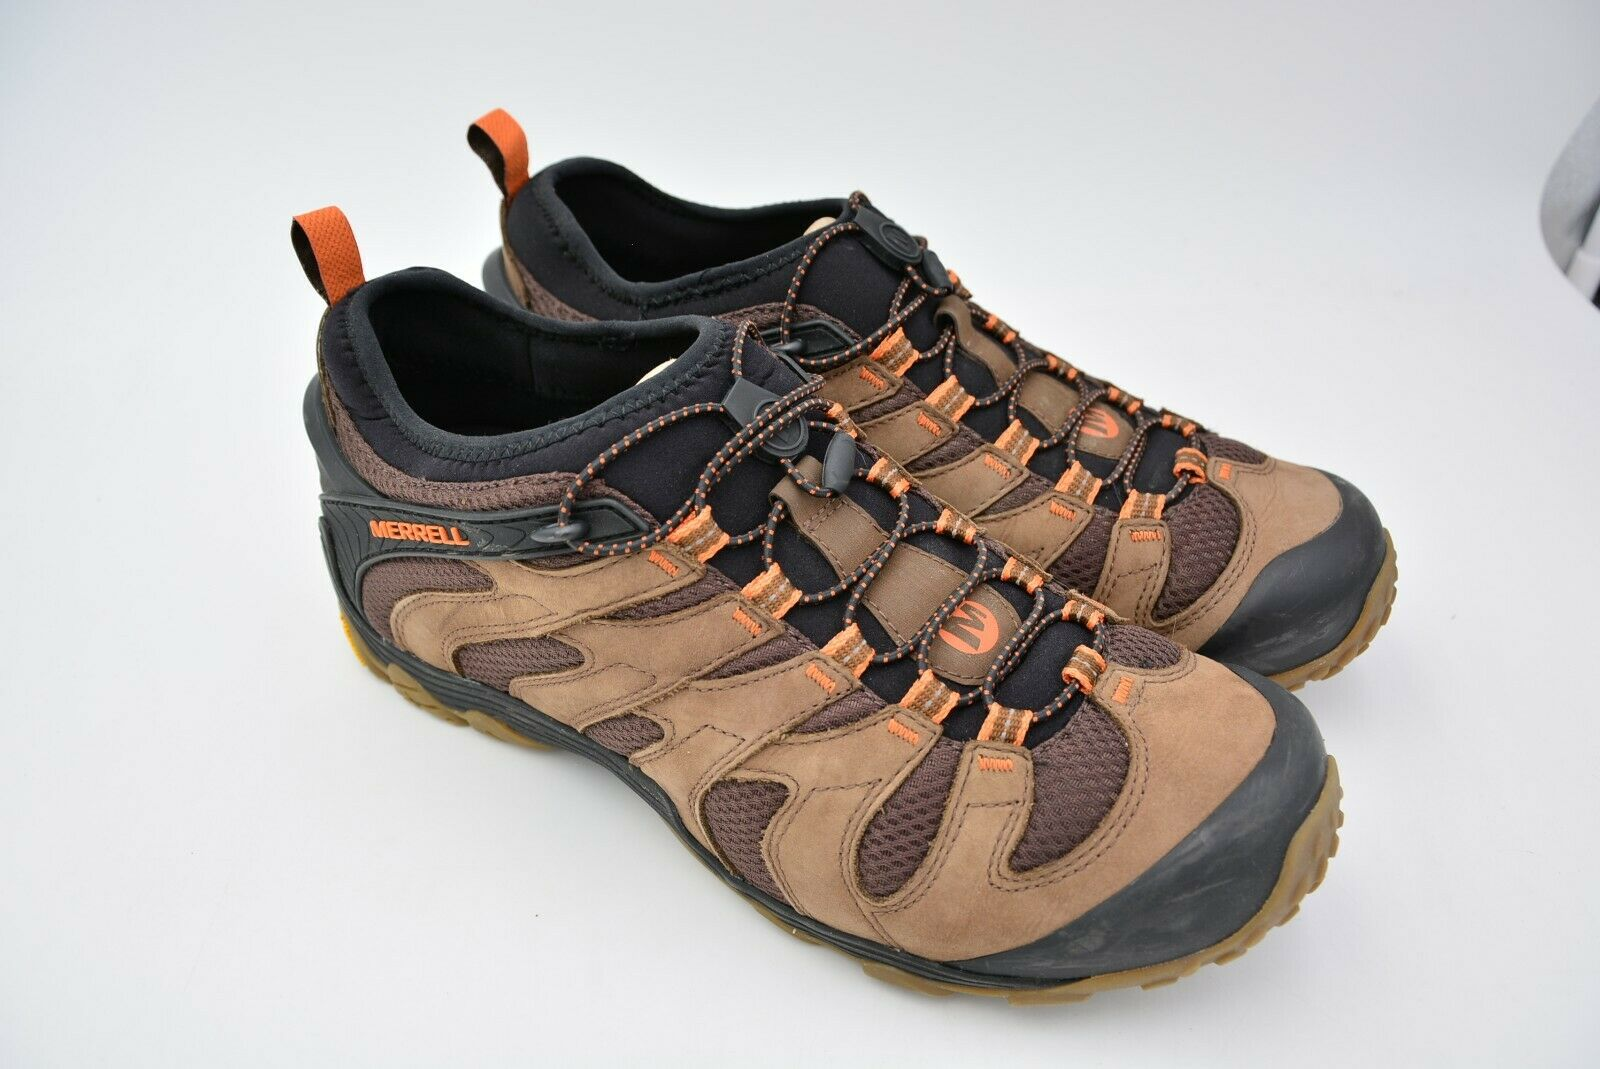 Merrell Men's Chameleon 7 Stretch Hiking shoes Dark Earth  Size US 13 Uesd  outlet sale